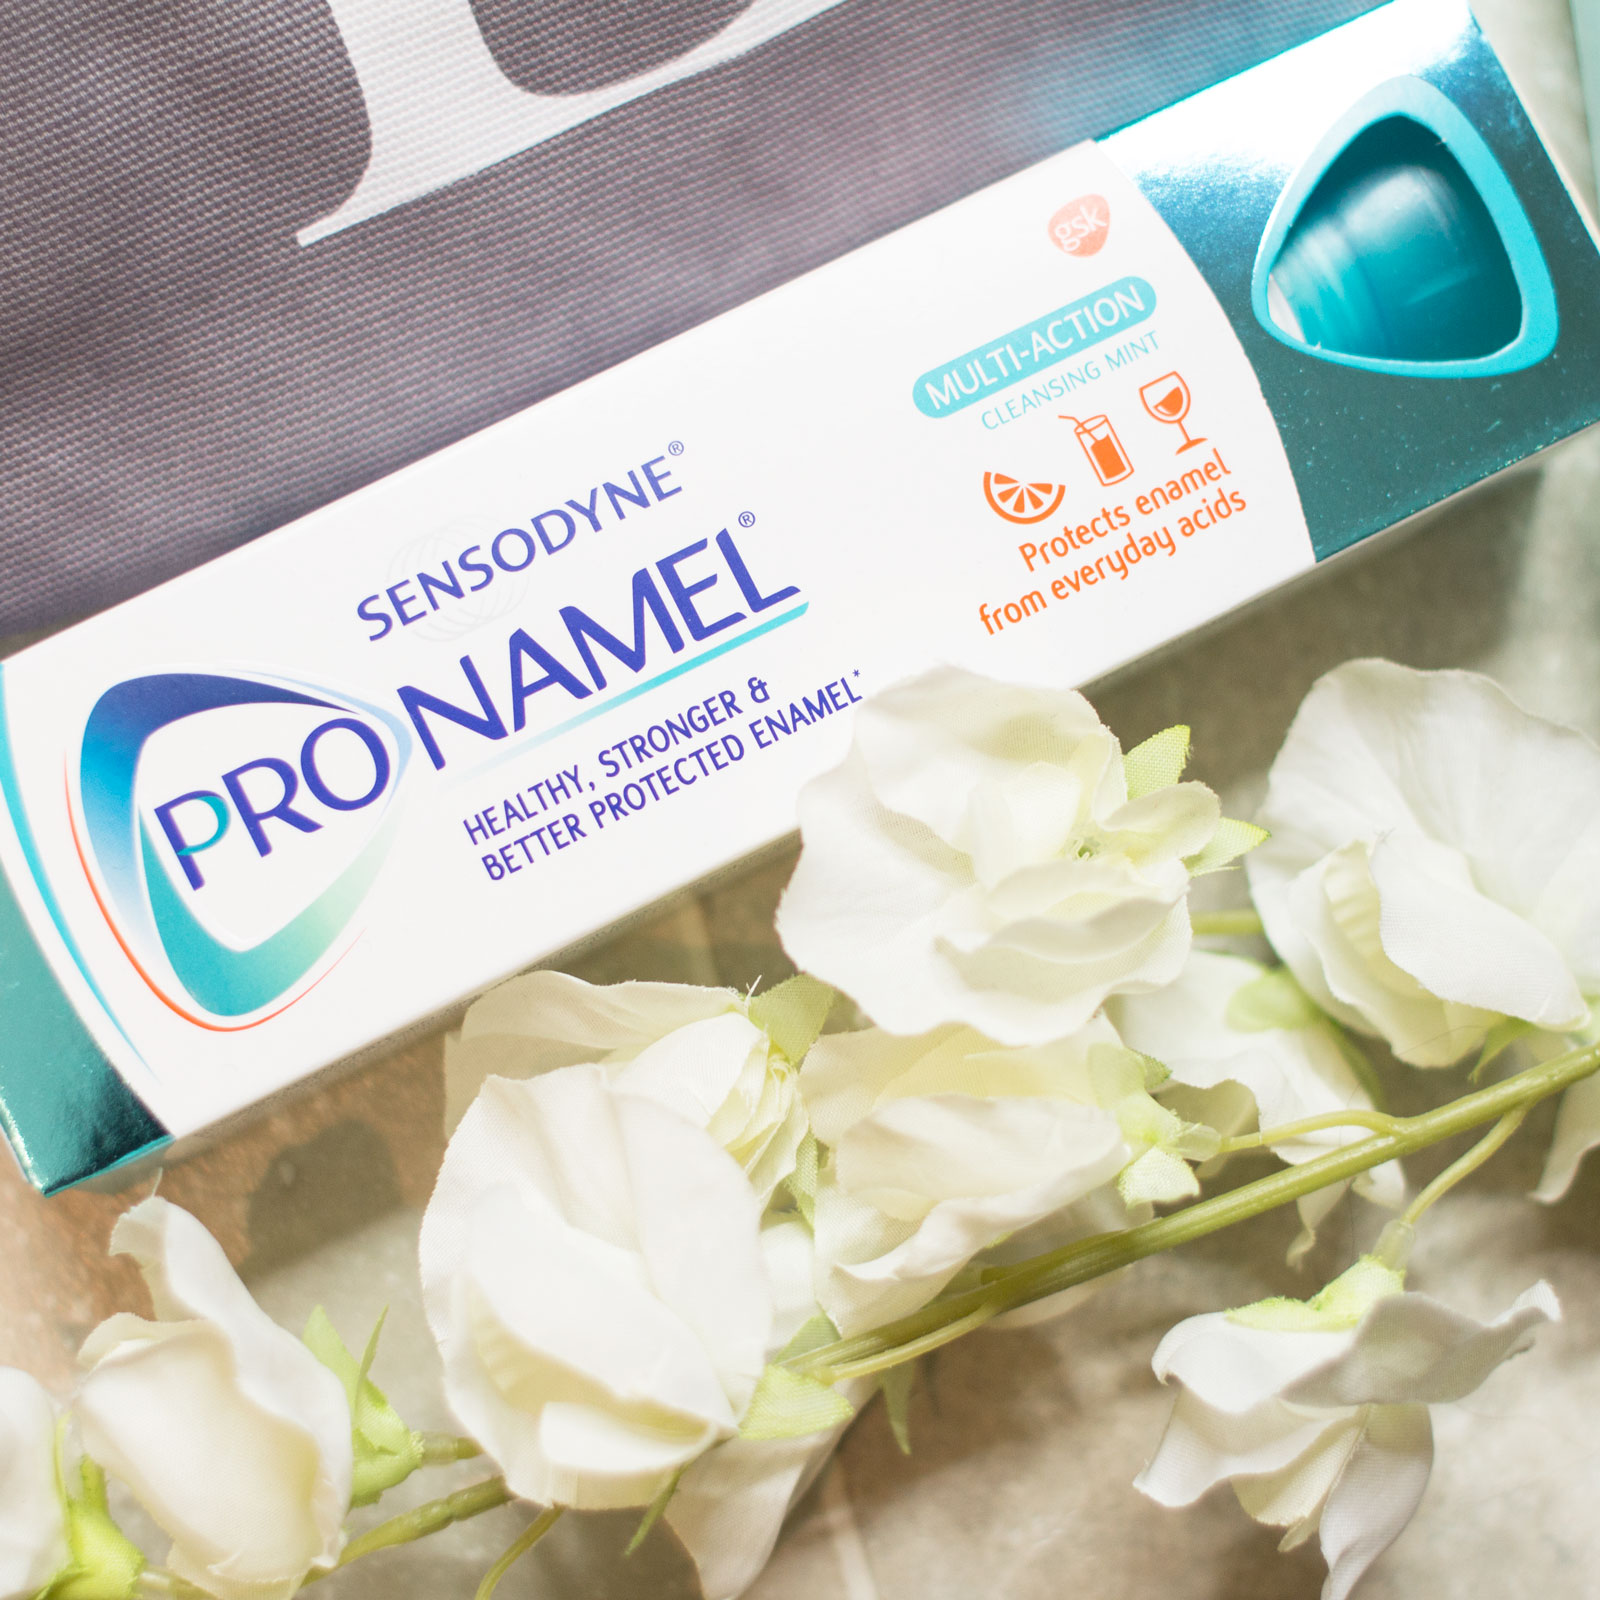 Sensodyne Pronamel Daily Toothpaste Review